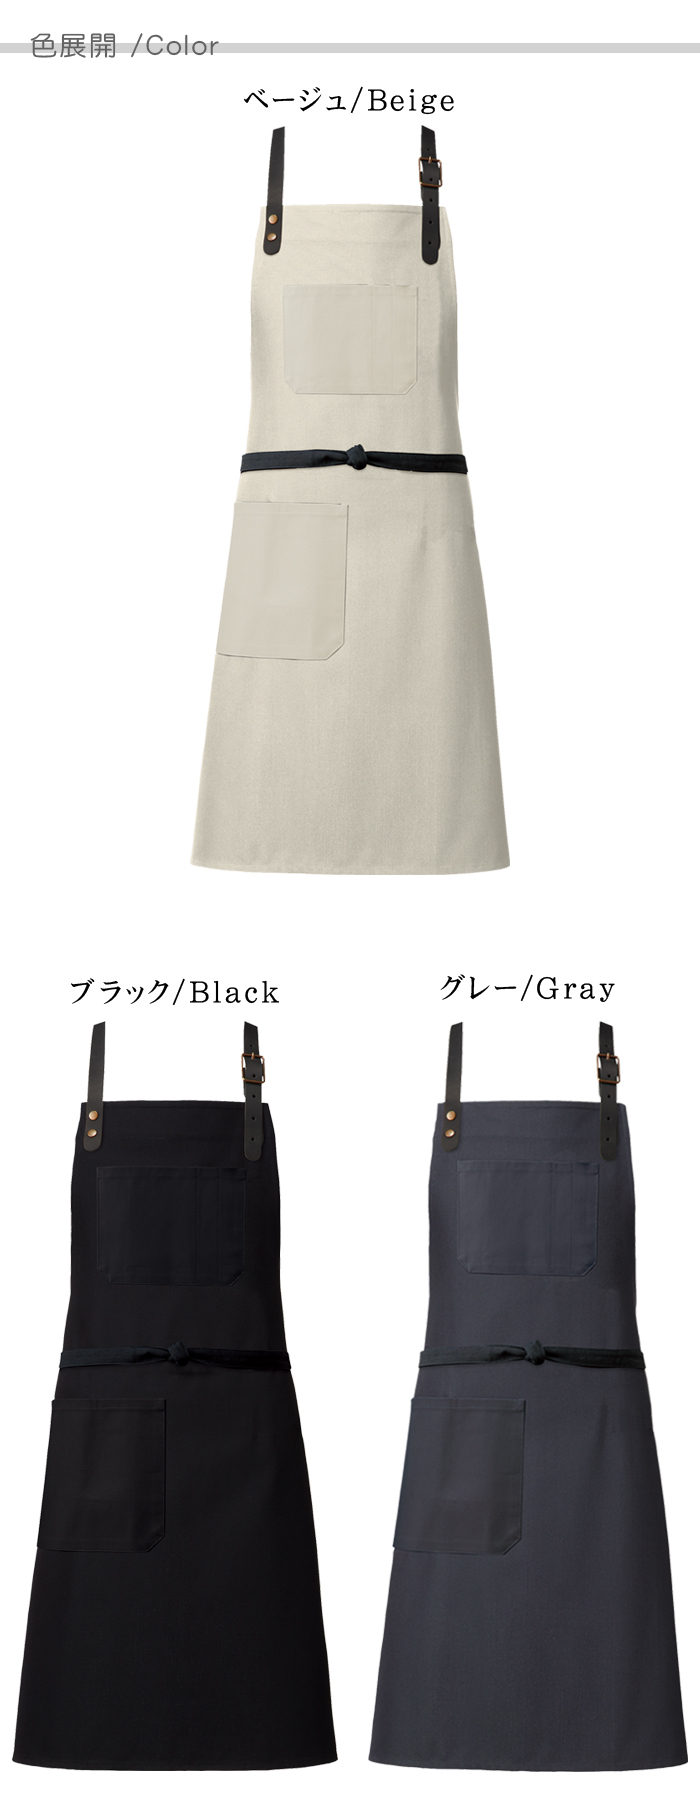 T8413首かけヒモがアクセント 胸あて首かけエプロン(男女兼用)[カフェ飲食店作業用制服] 色展開説明